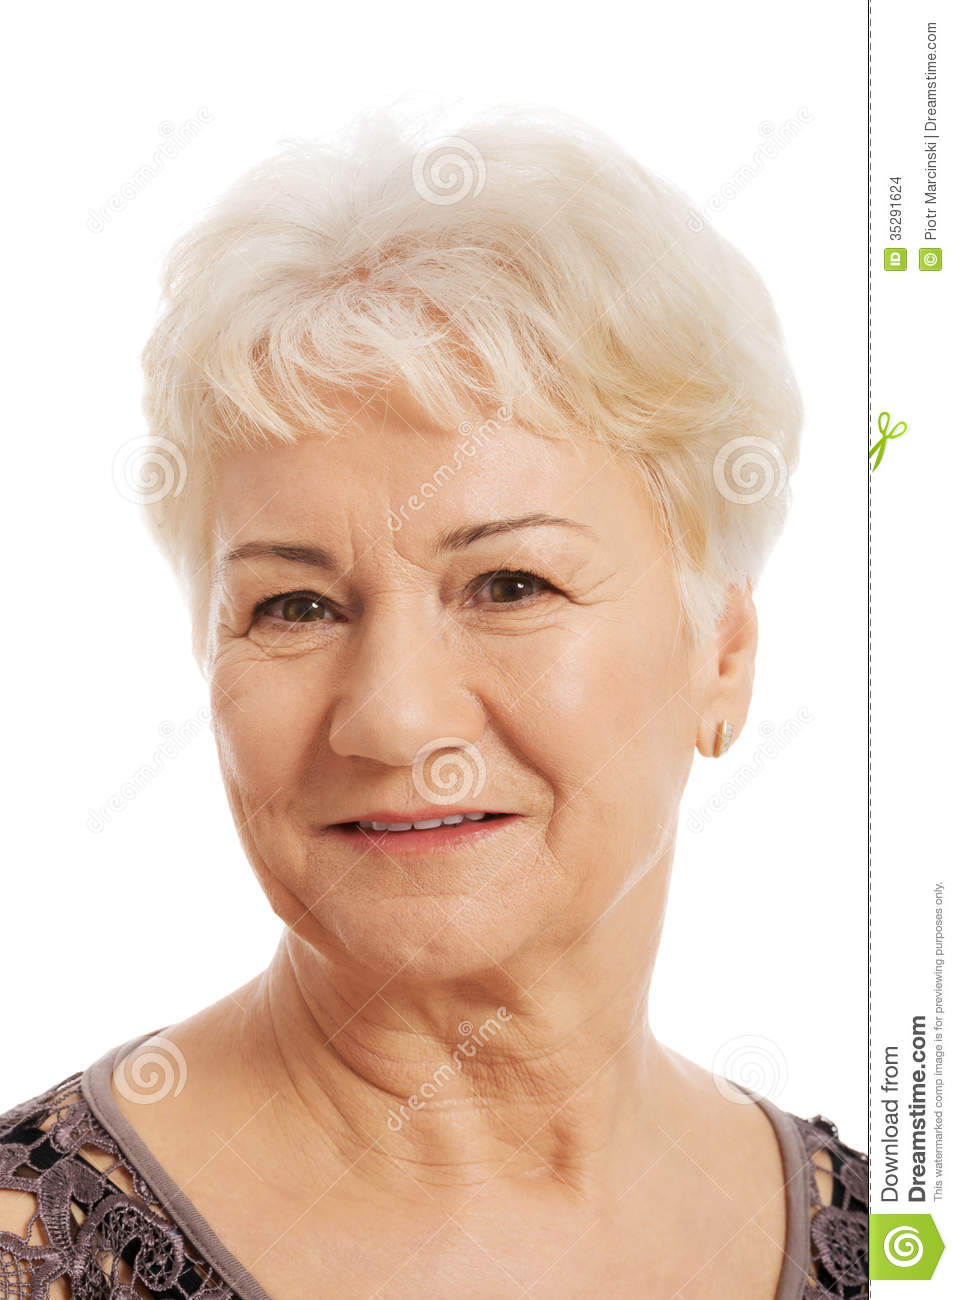 Portrait Of An Old, Elderly Lady. Stock Photo - Image